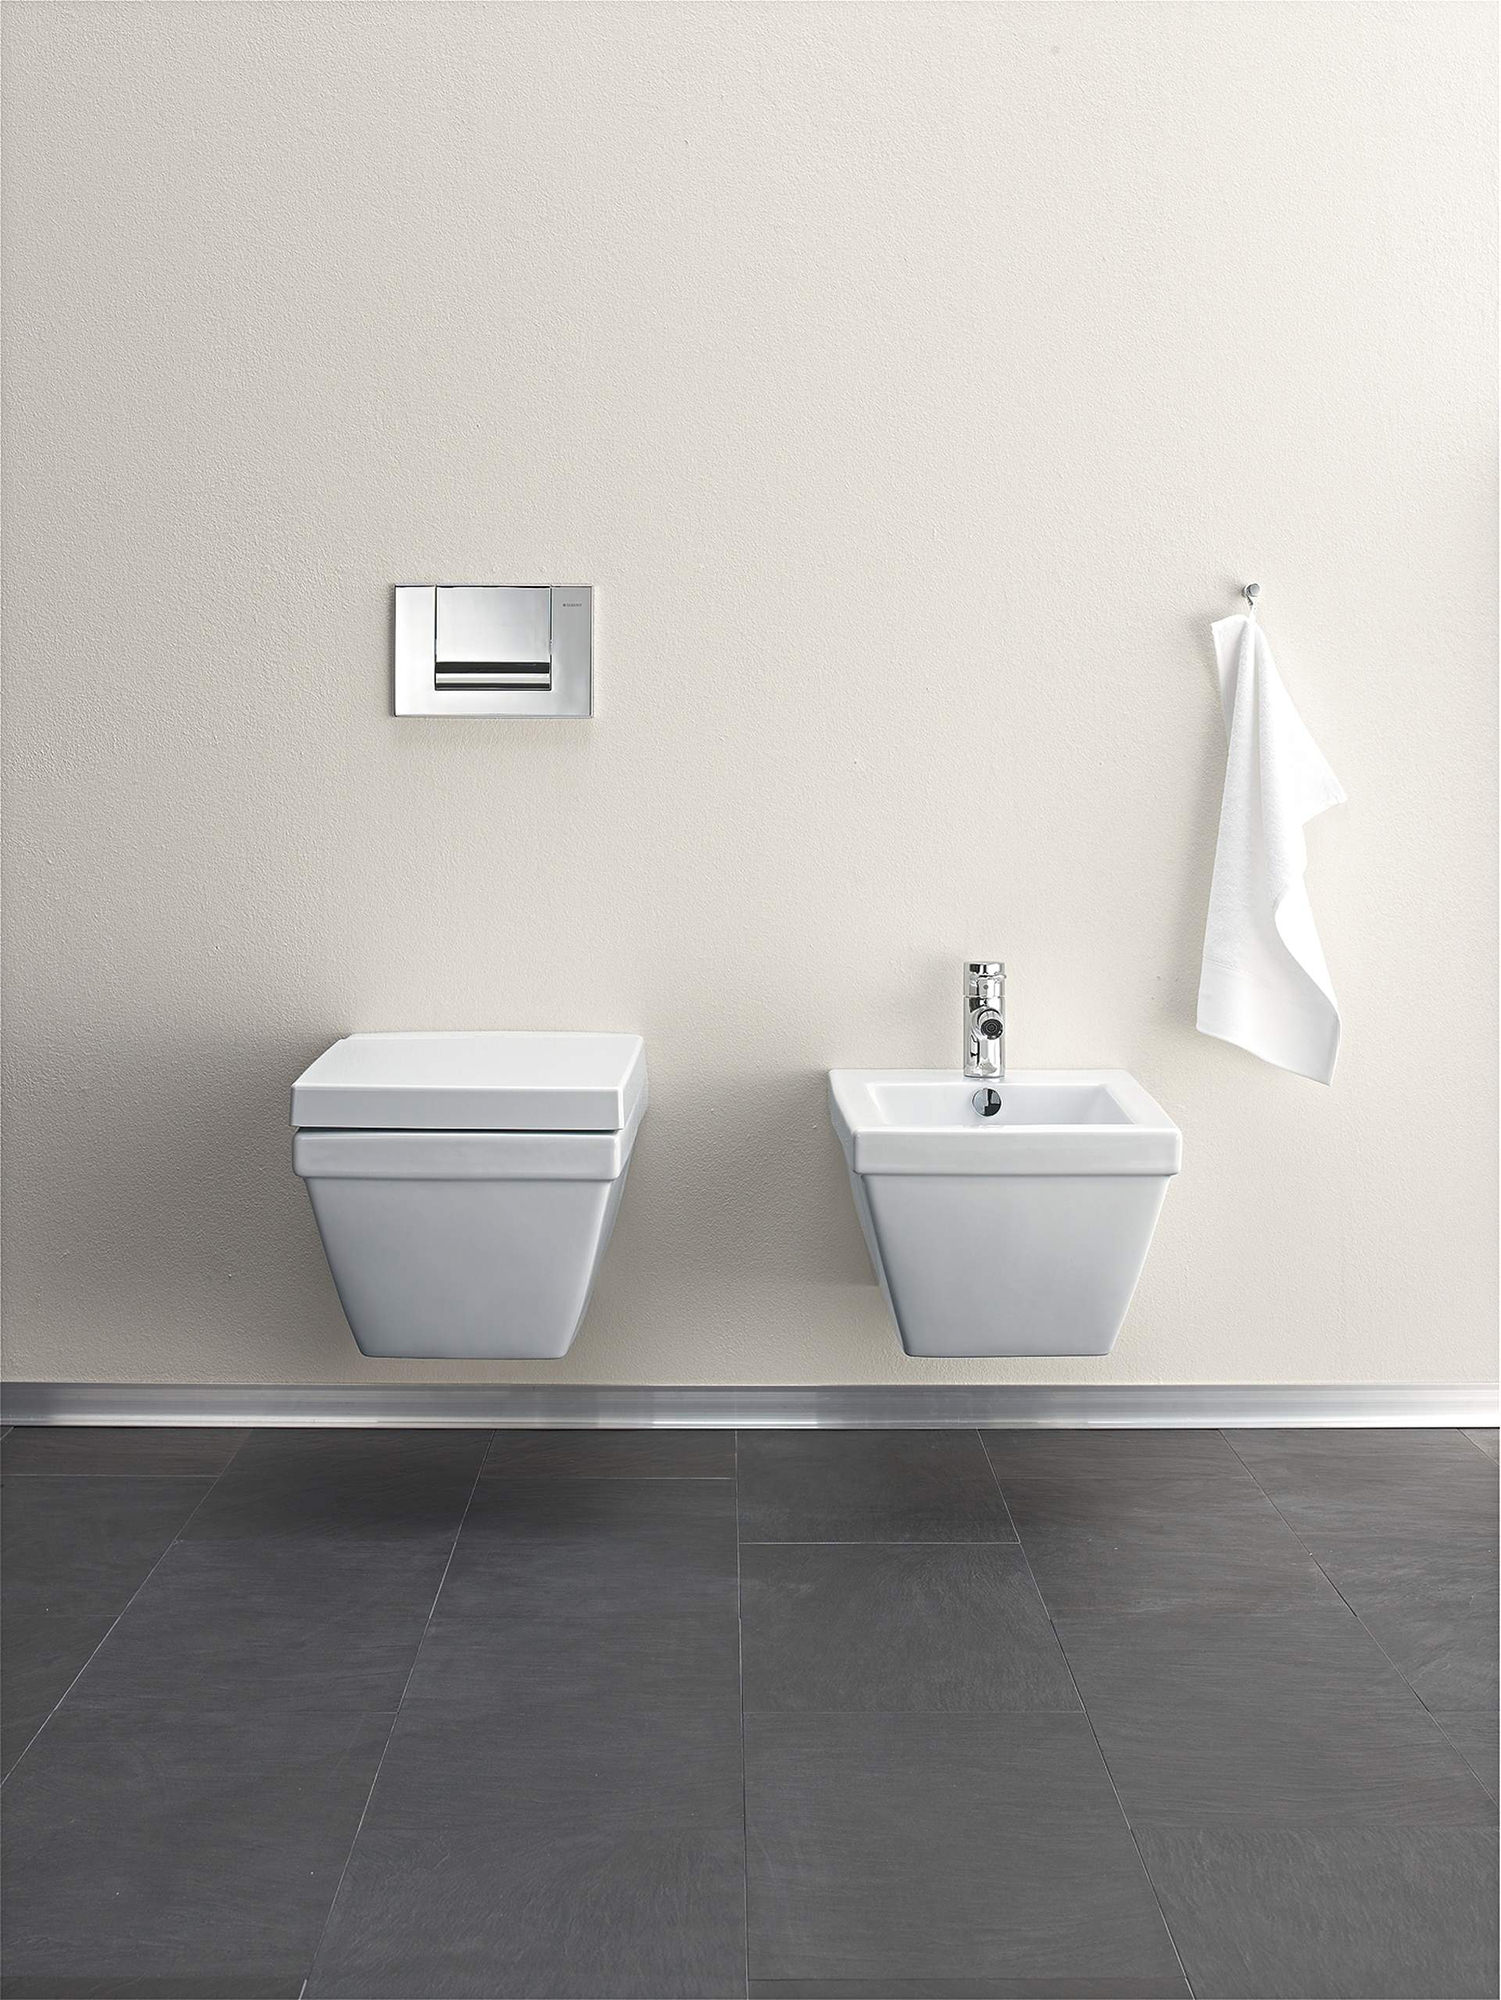 duravit 2nd floor 1 tap hole wall mounted bidet. Black Bedroom Furniture Sets. Home Design Ideas